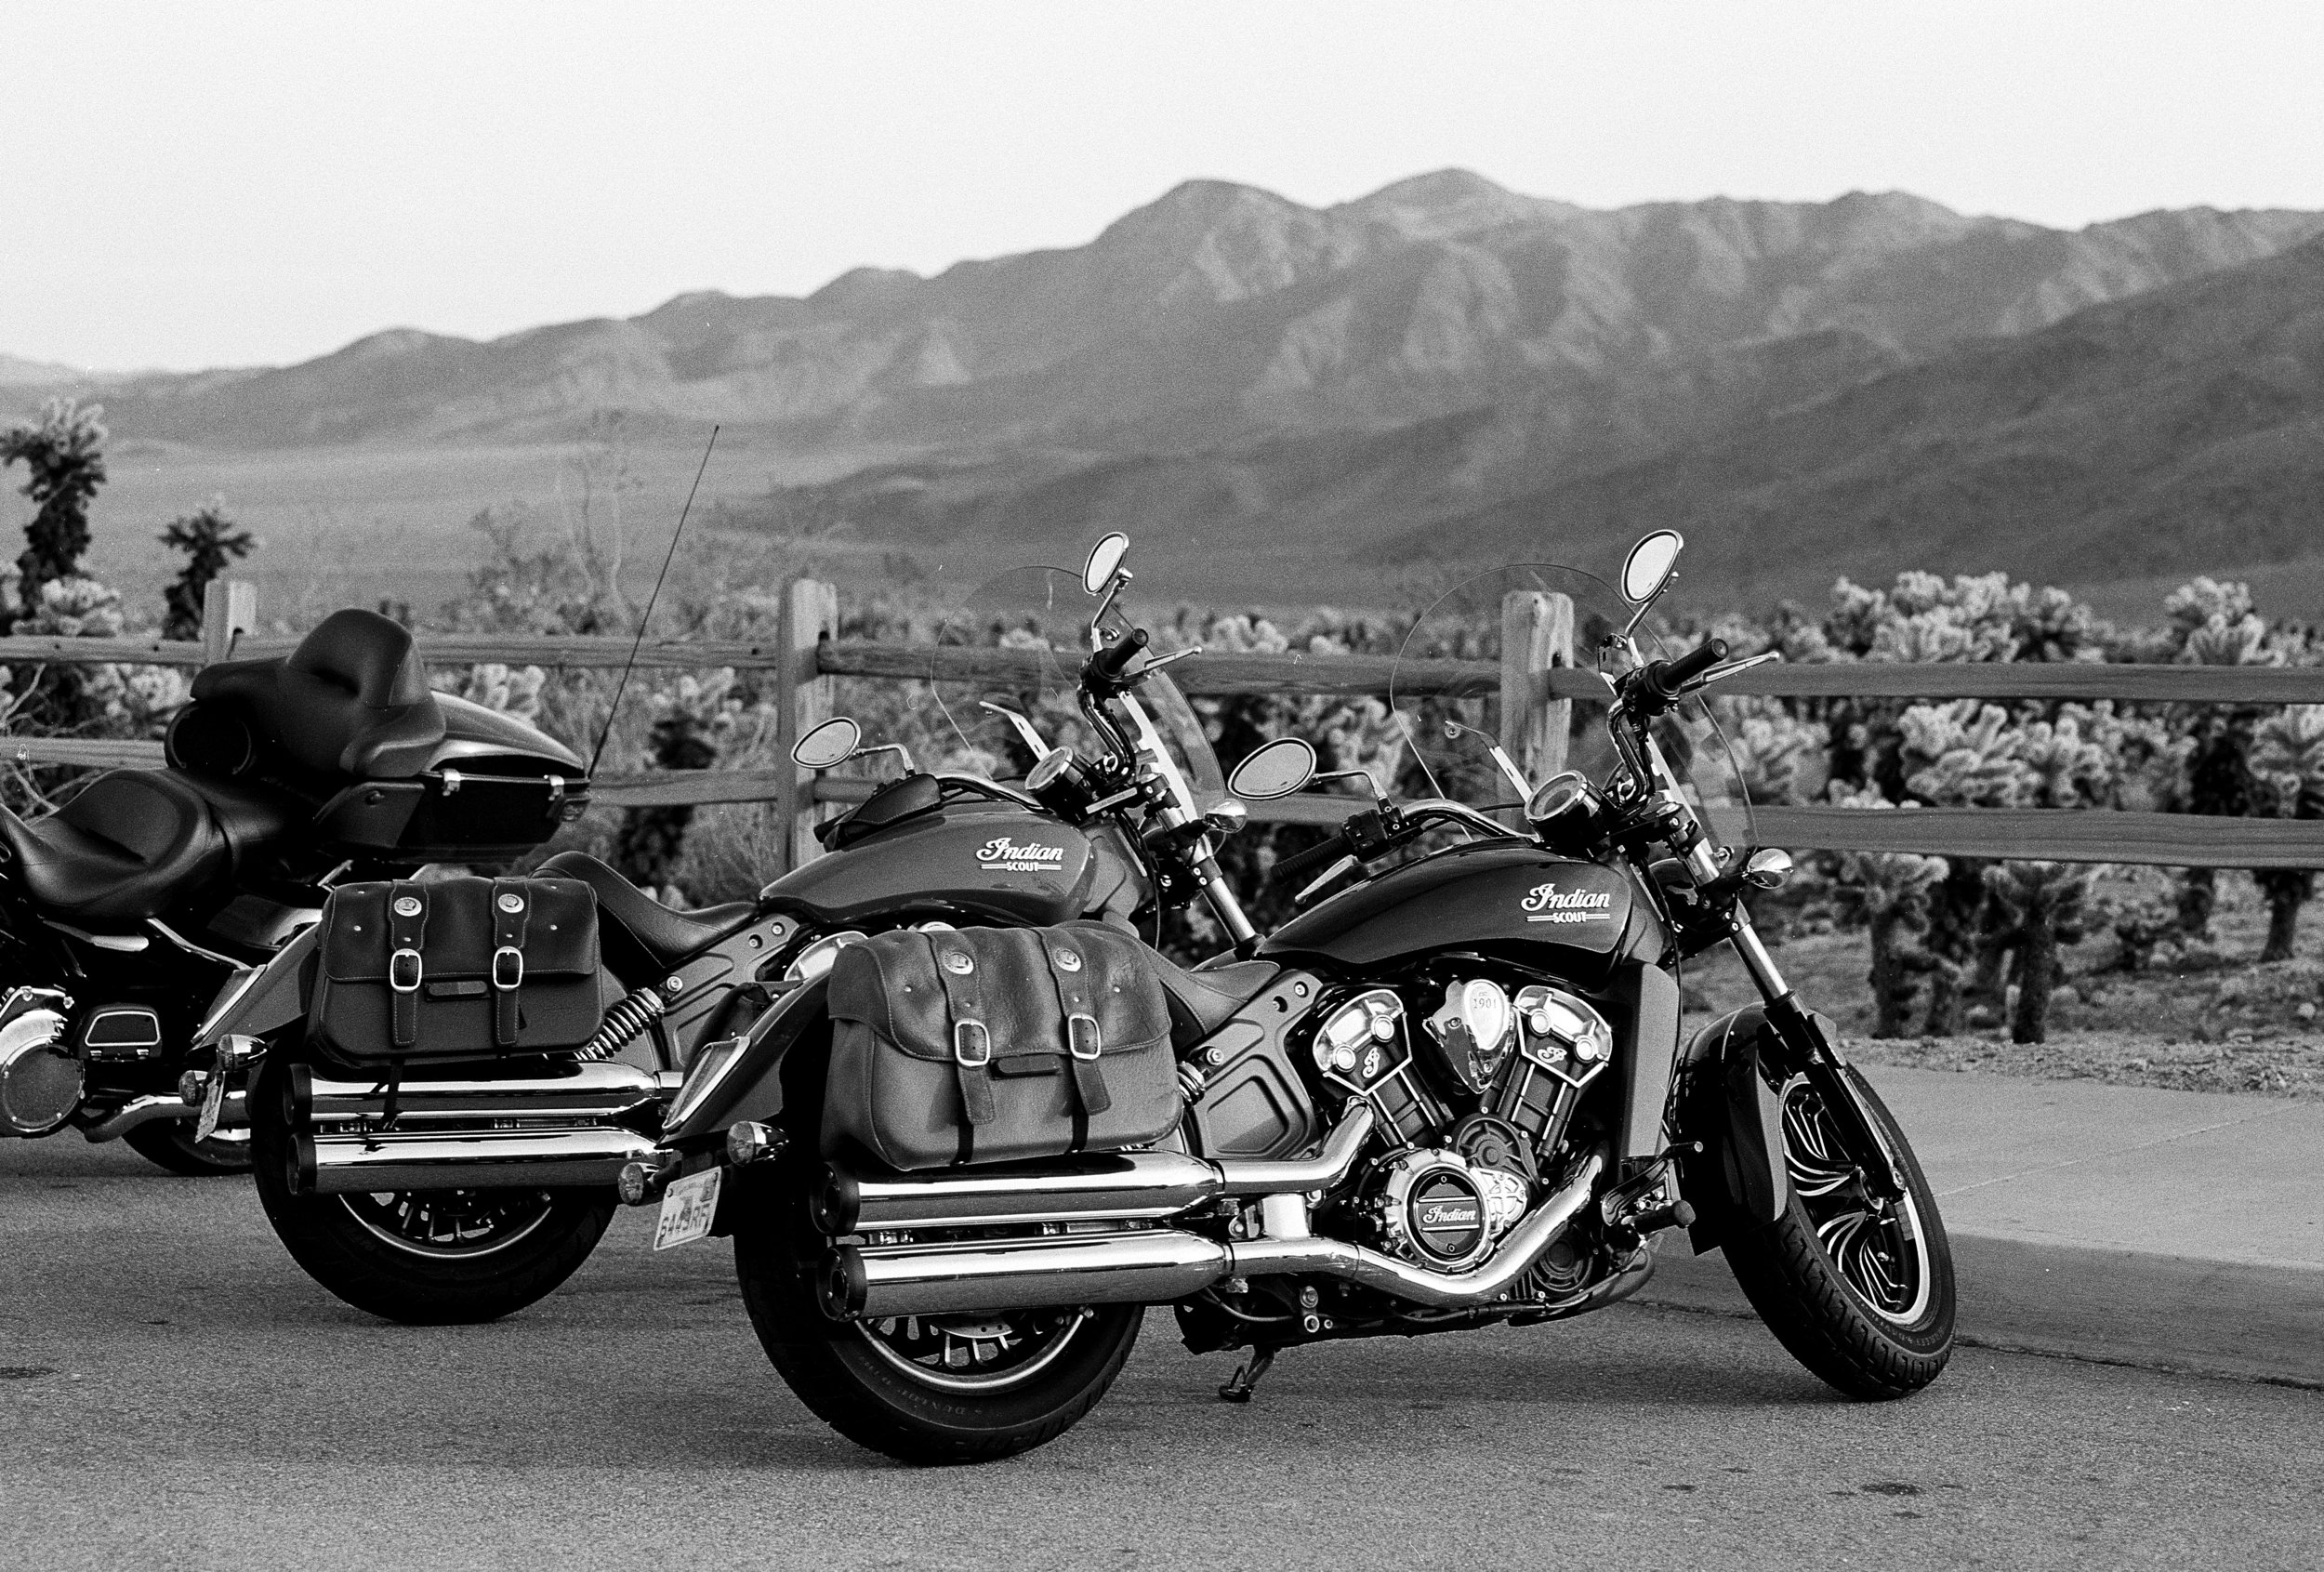 motorcycles1-Recovered-Recovered.jpg